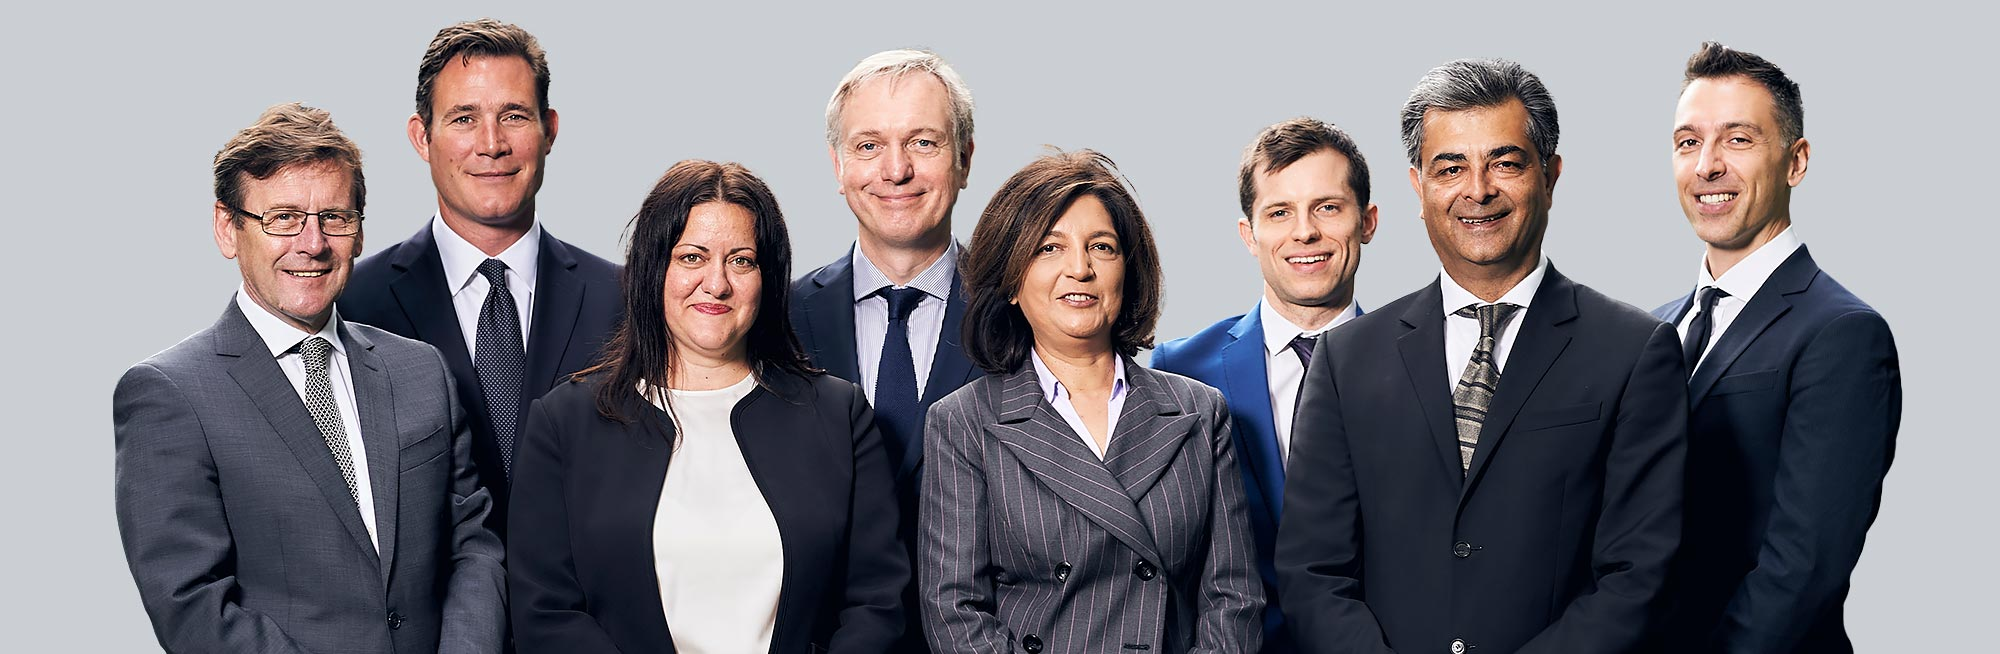 A colour image of the Westhill Team against a grey background used on the Overview page of the Westhill real estate development website